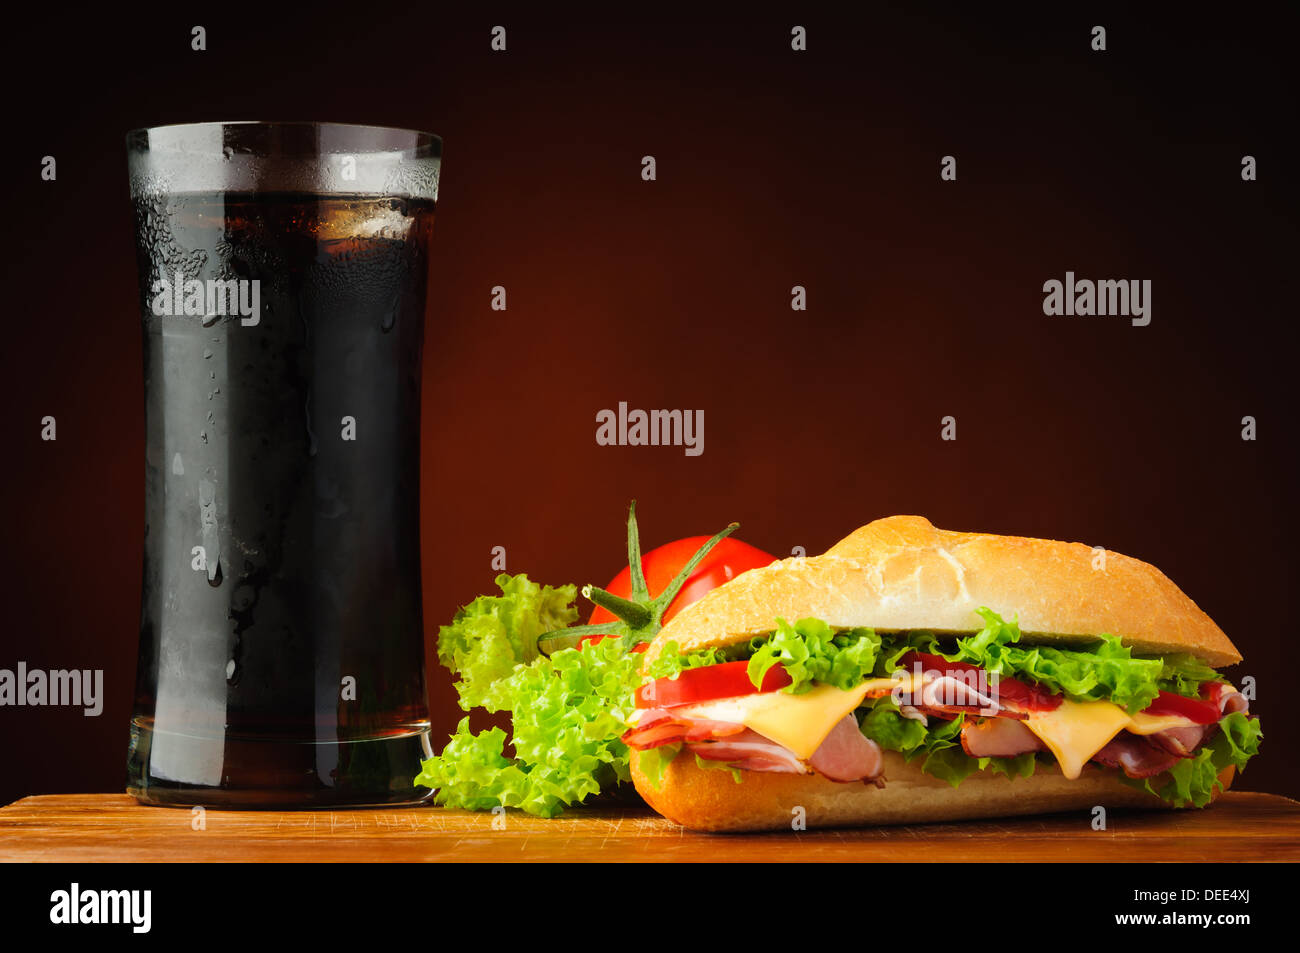 still life with sandwich, vegetables and cola drink - Stock Image